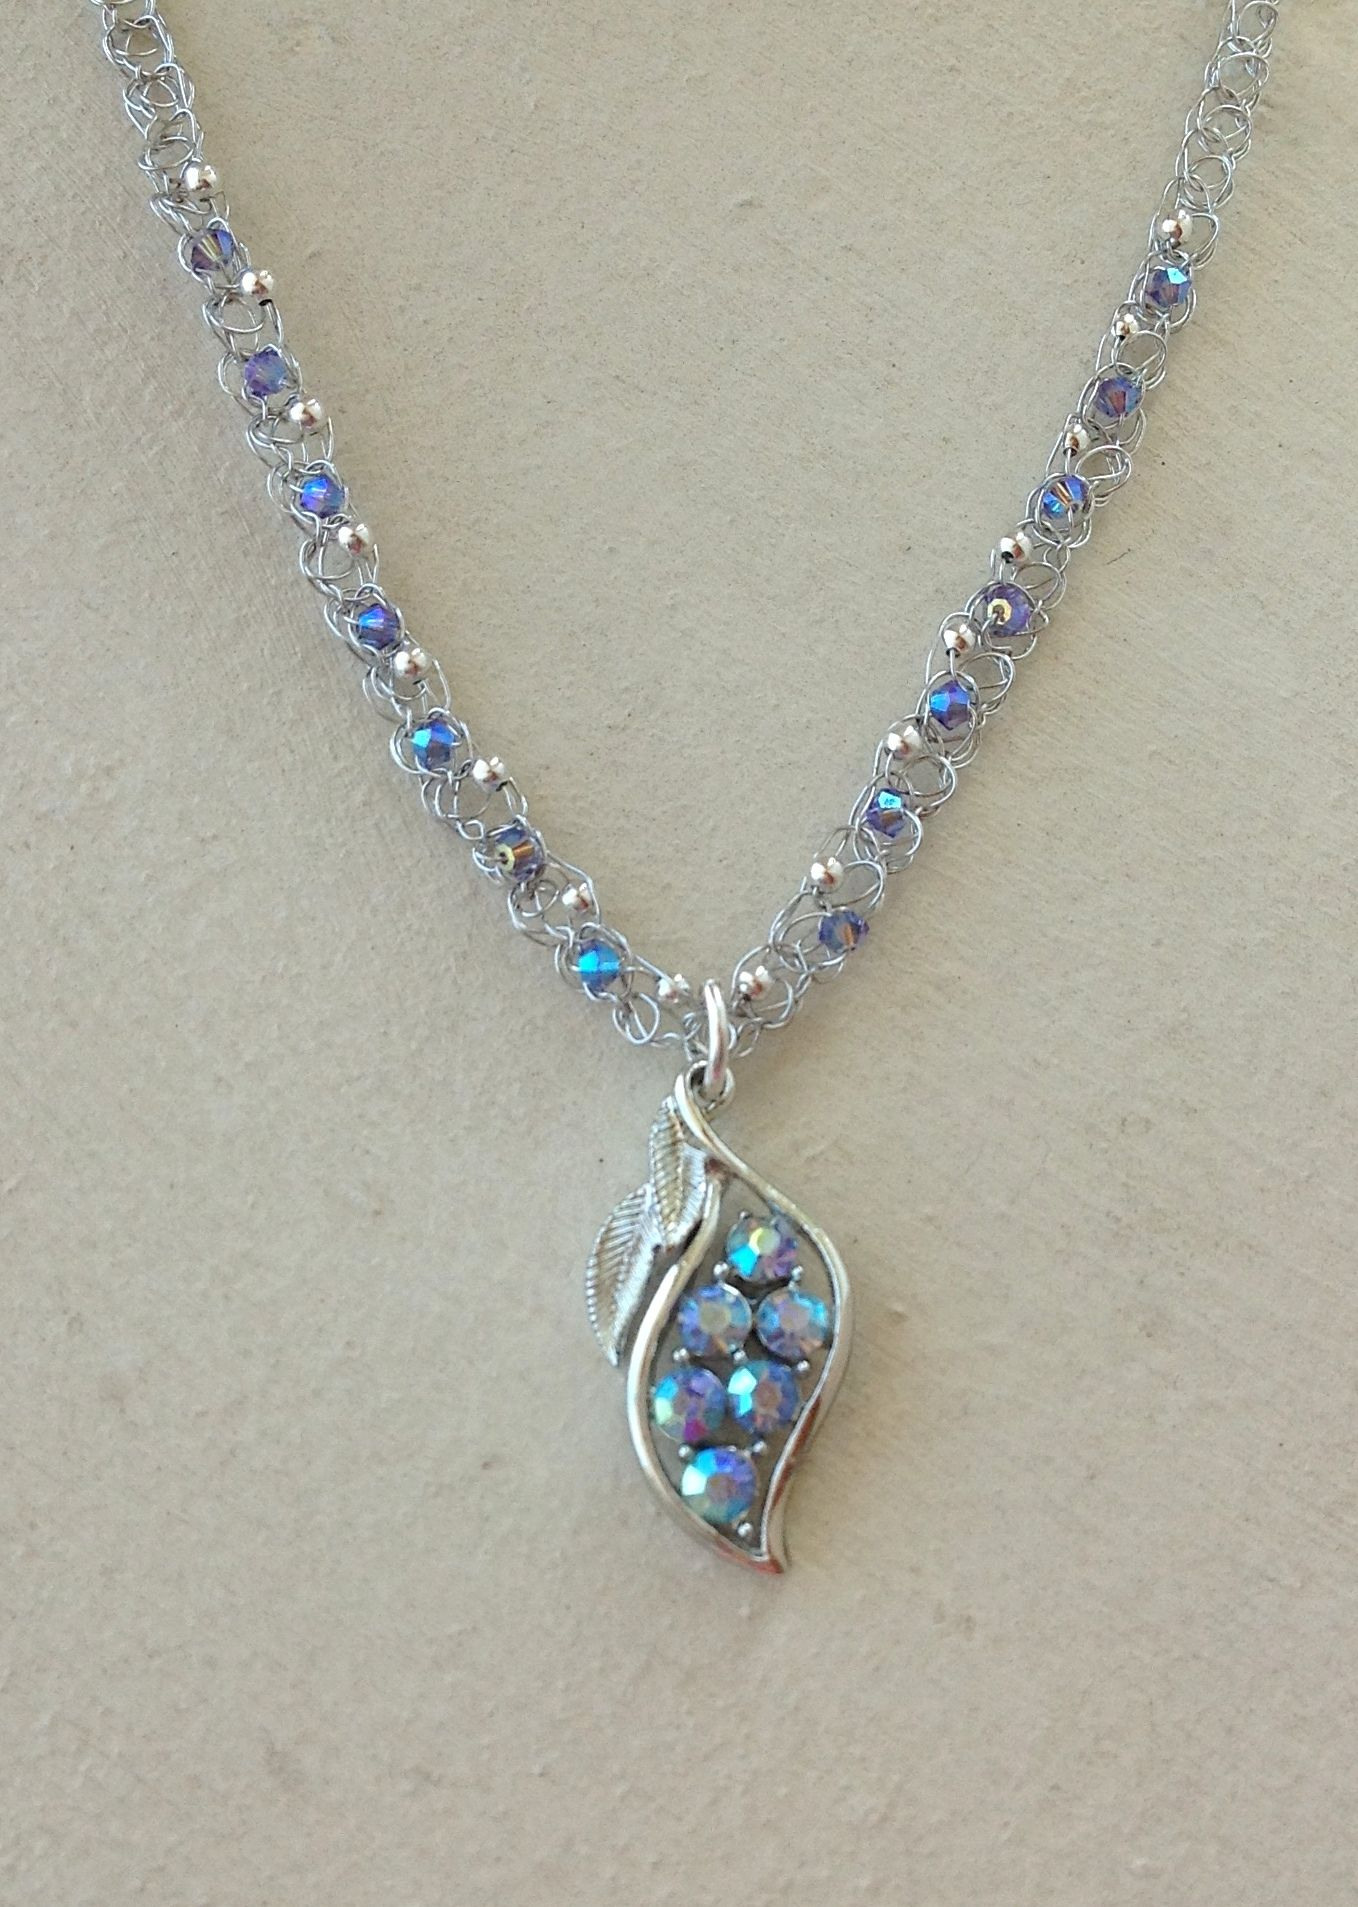 Crocheted wire swarovski crystal and vintage pendant